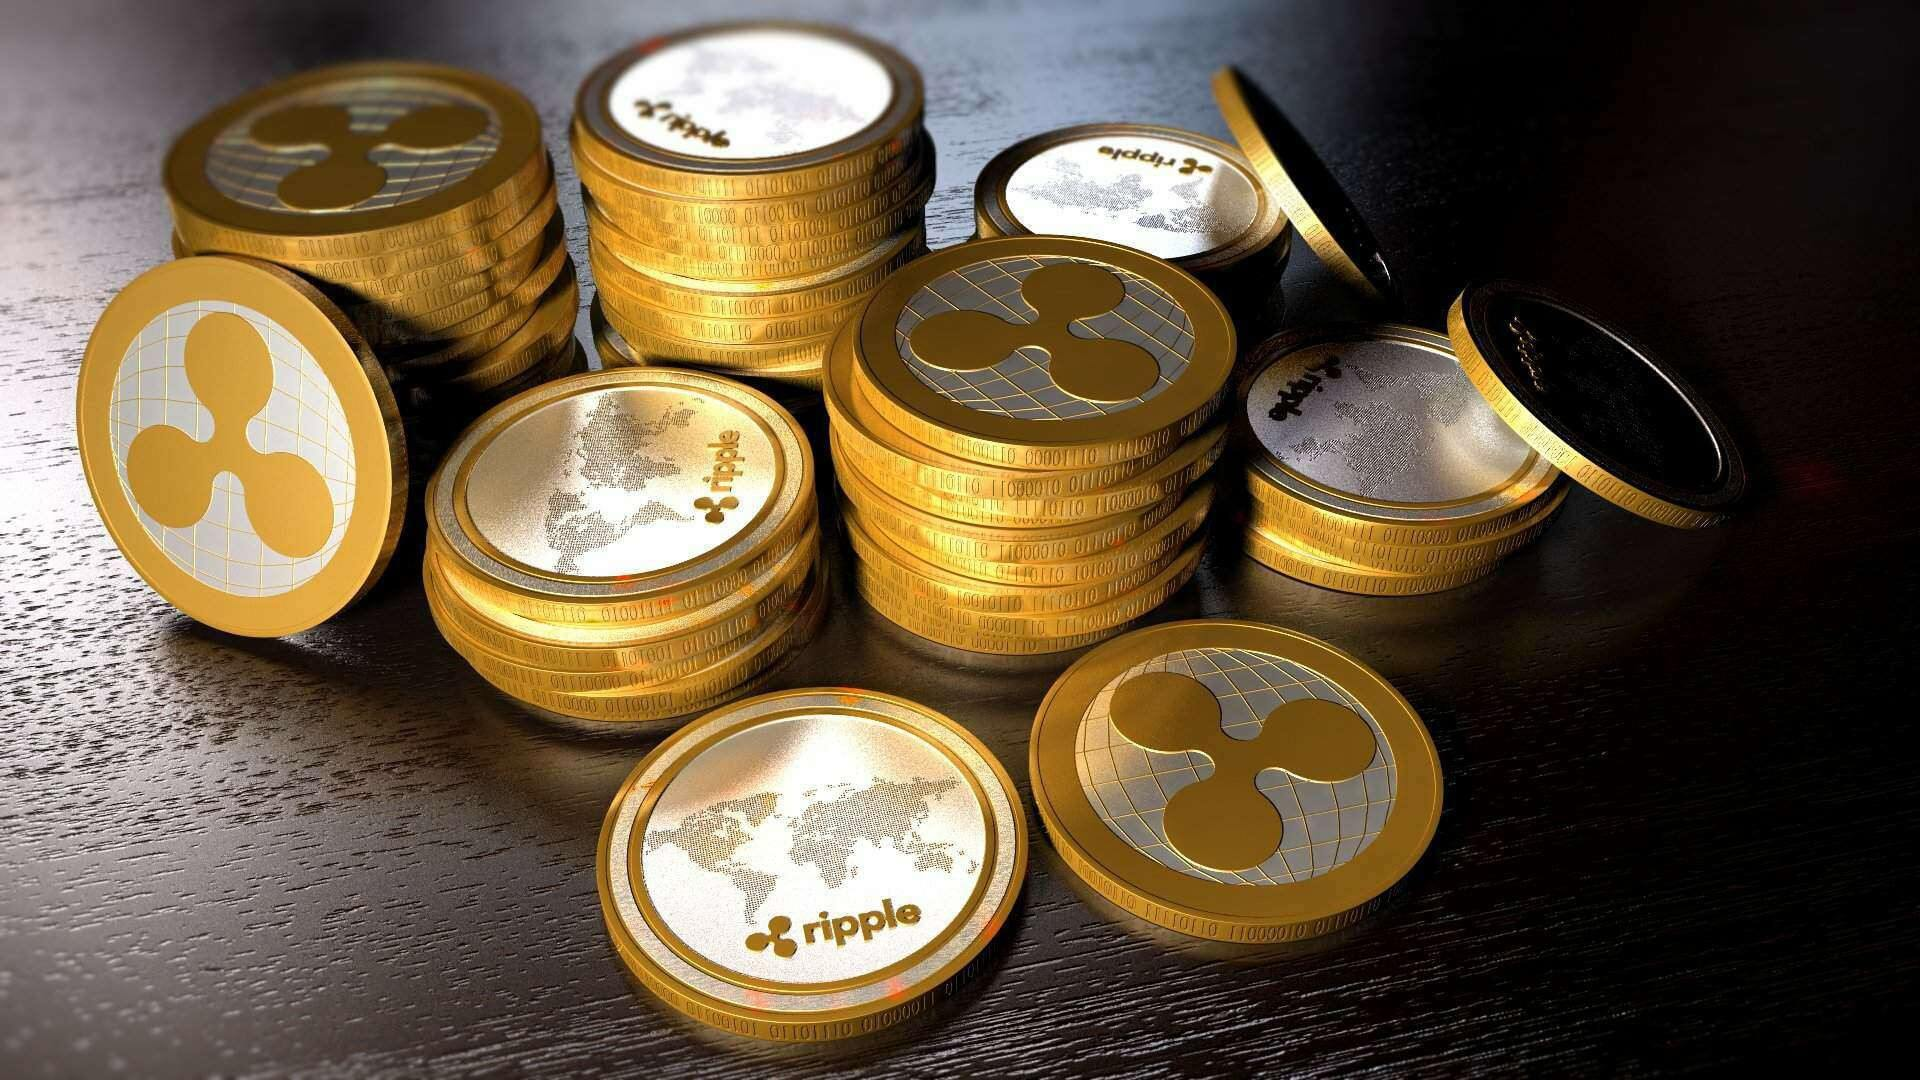 Ripple briefly overtakes Ethereum as the No. 2 crypto